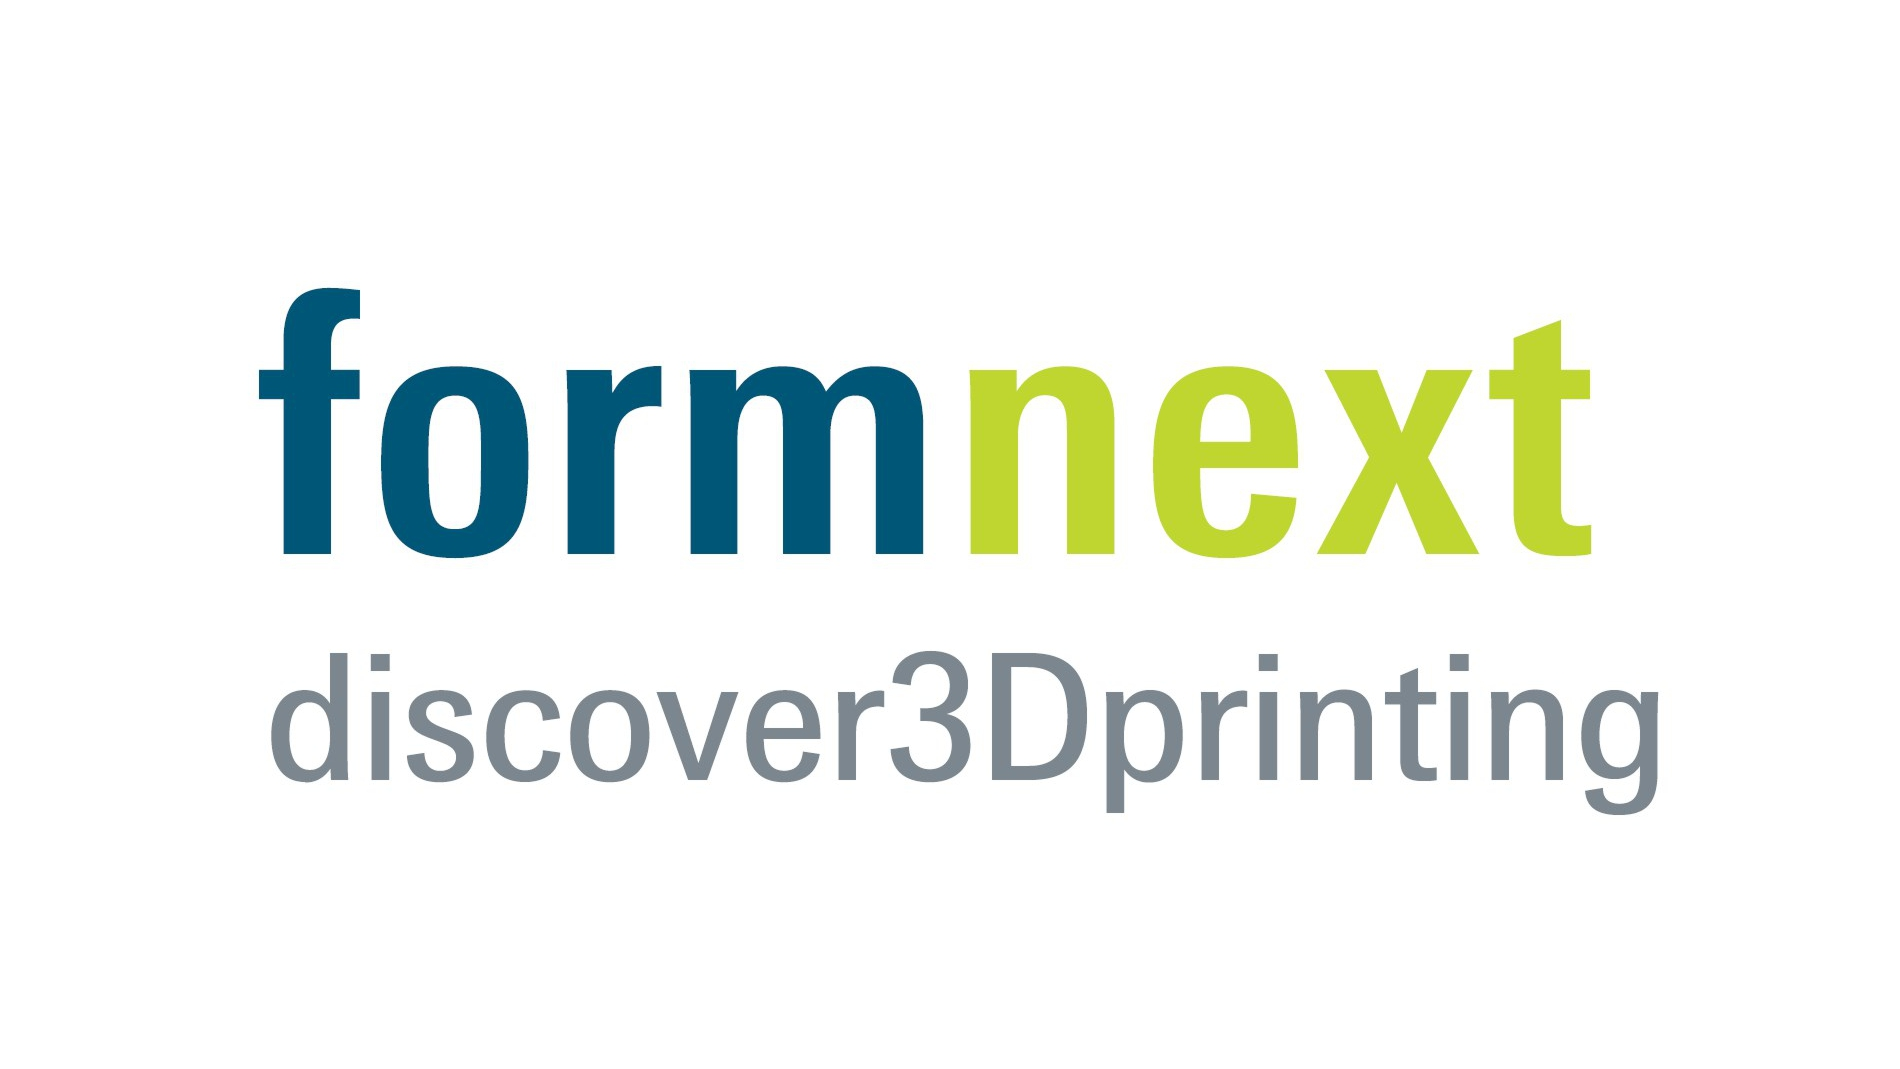 discover3Dprinting